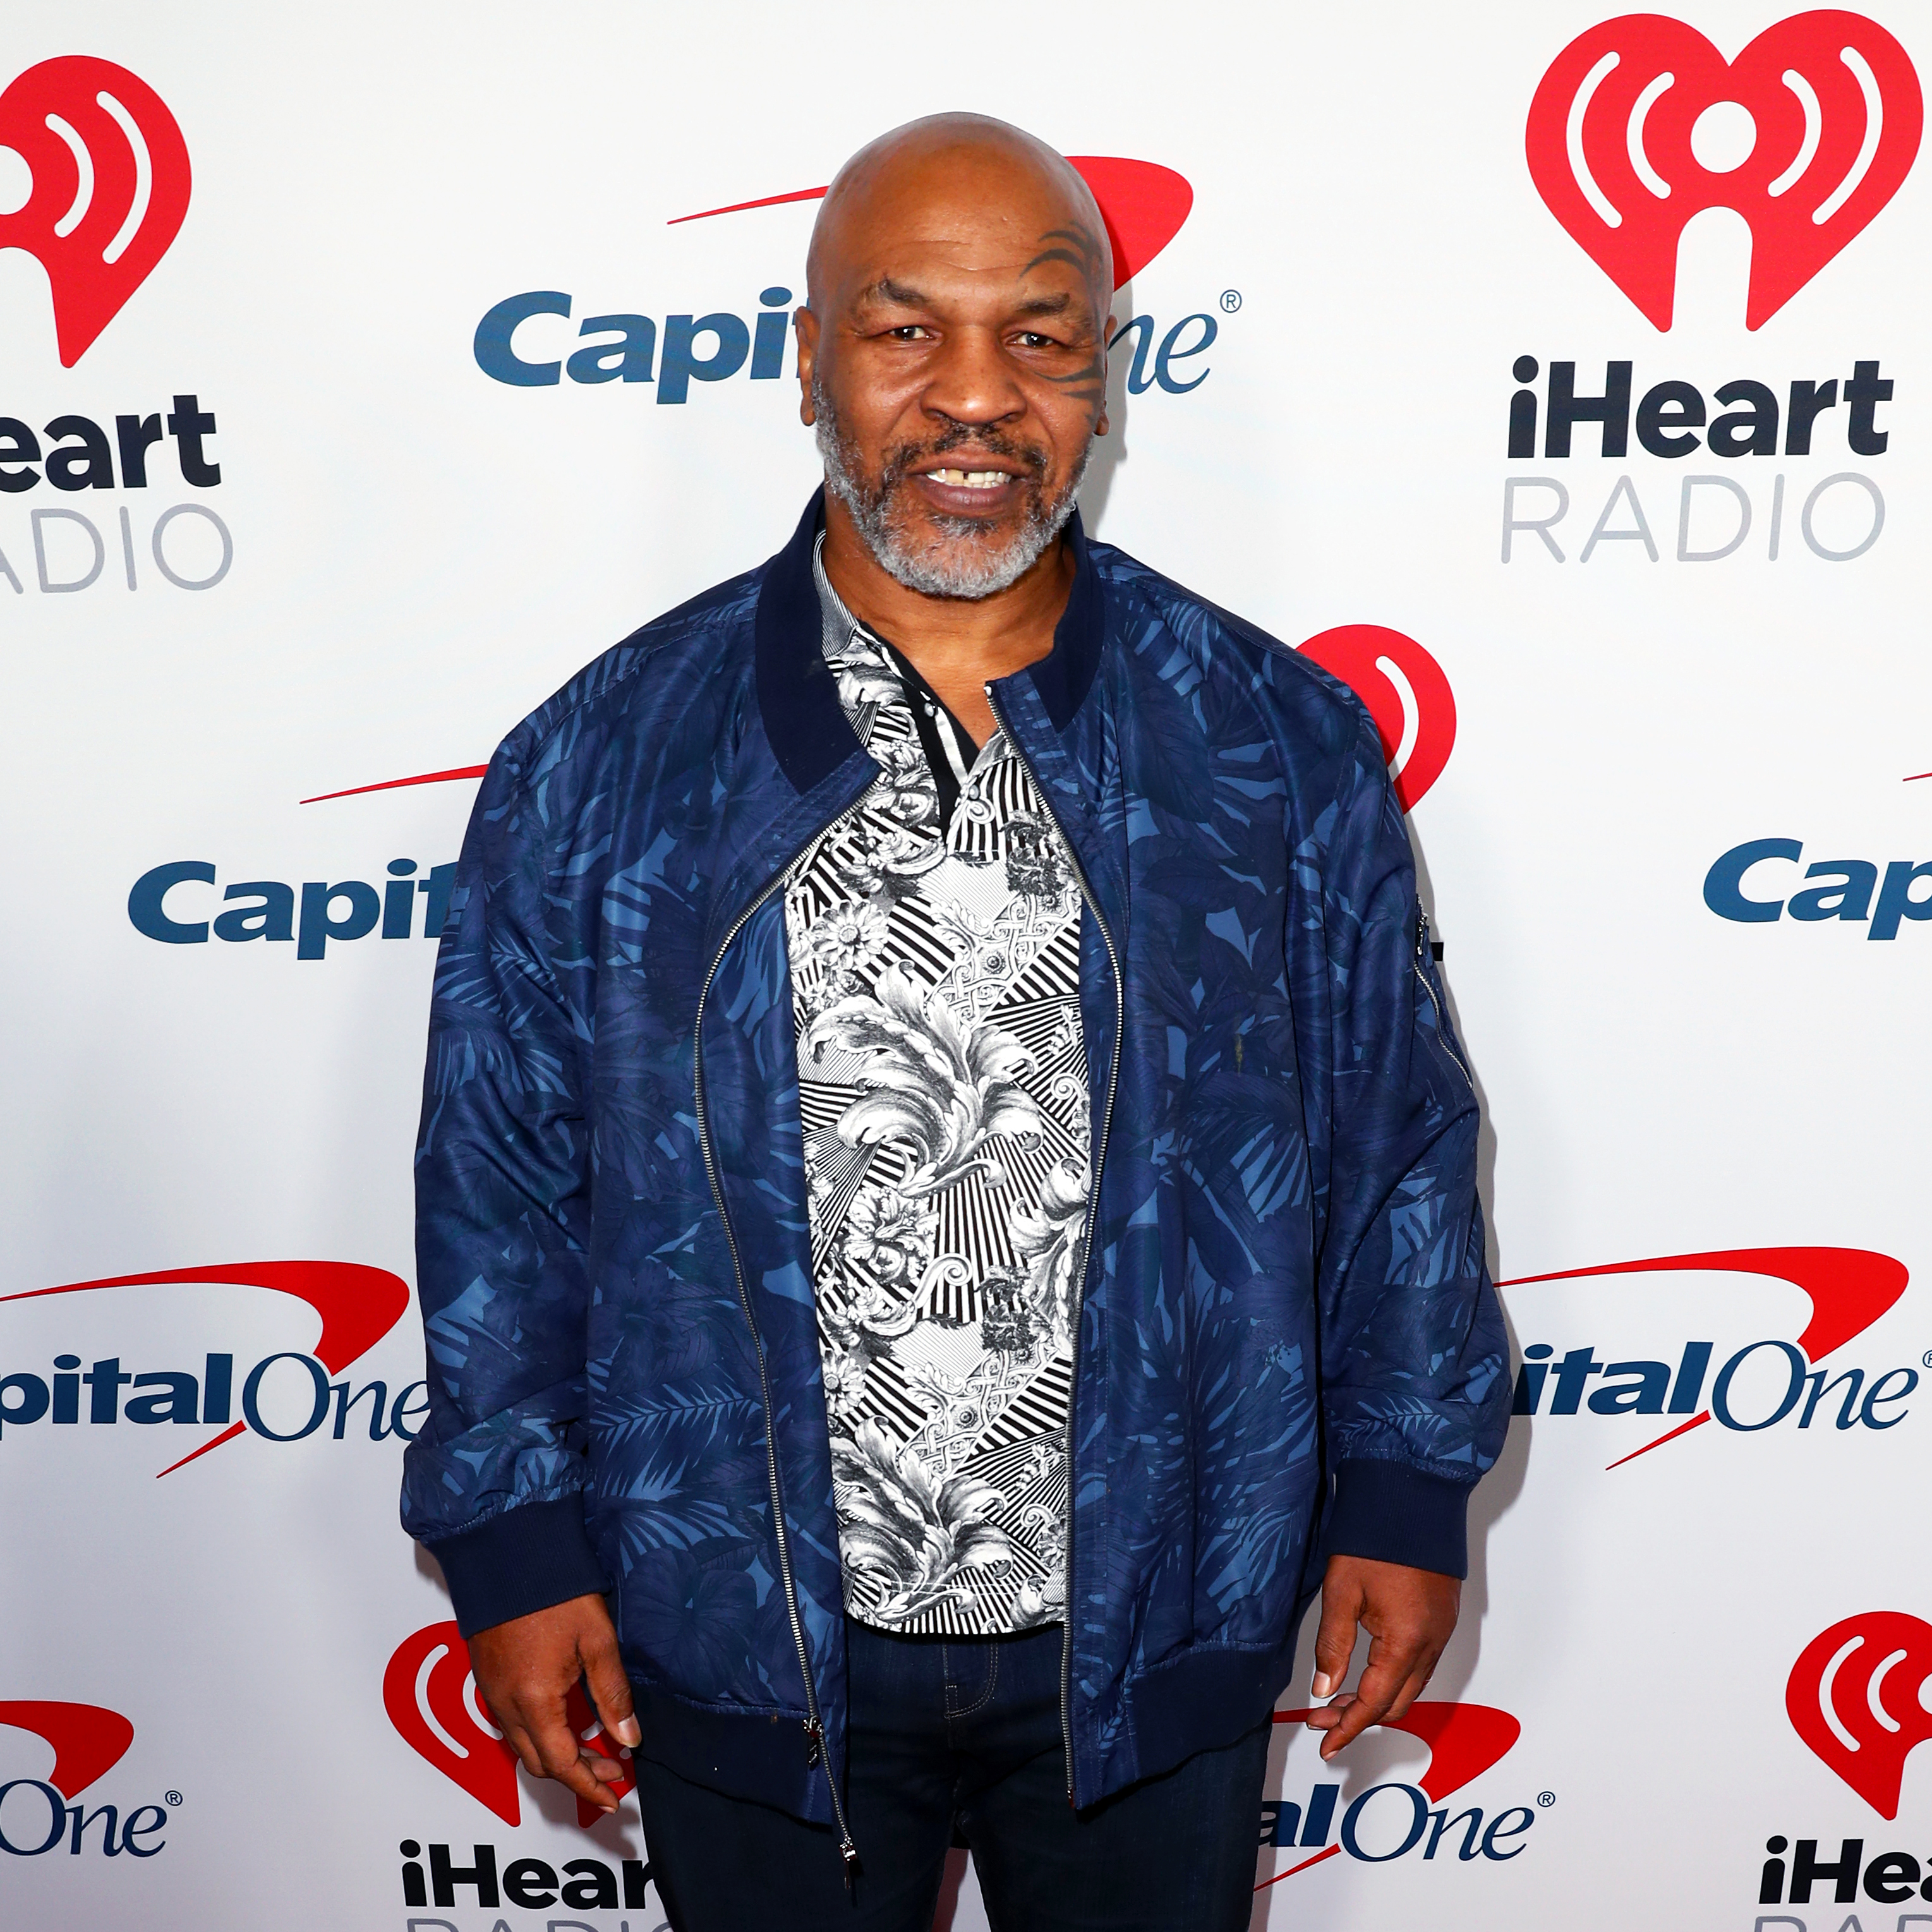 Mike Tyson arrives at the 2019 iHeartRadio Podcast Awards Presented by Capital One at the iHeartRadio Theater LA on January 18, 2019 in Burbank, California. (Photo by Joe Scarnici/Getty Images for iHeartMedia)